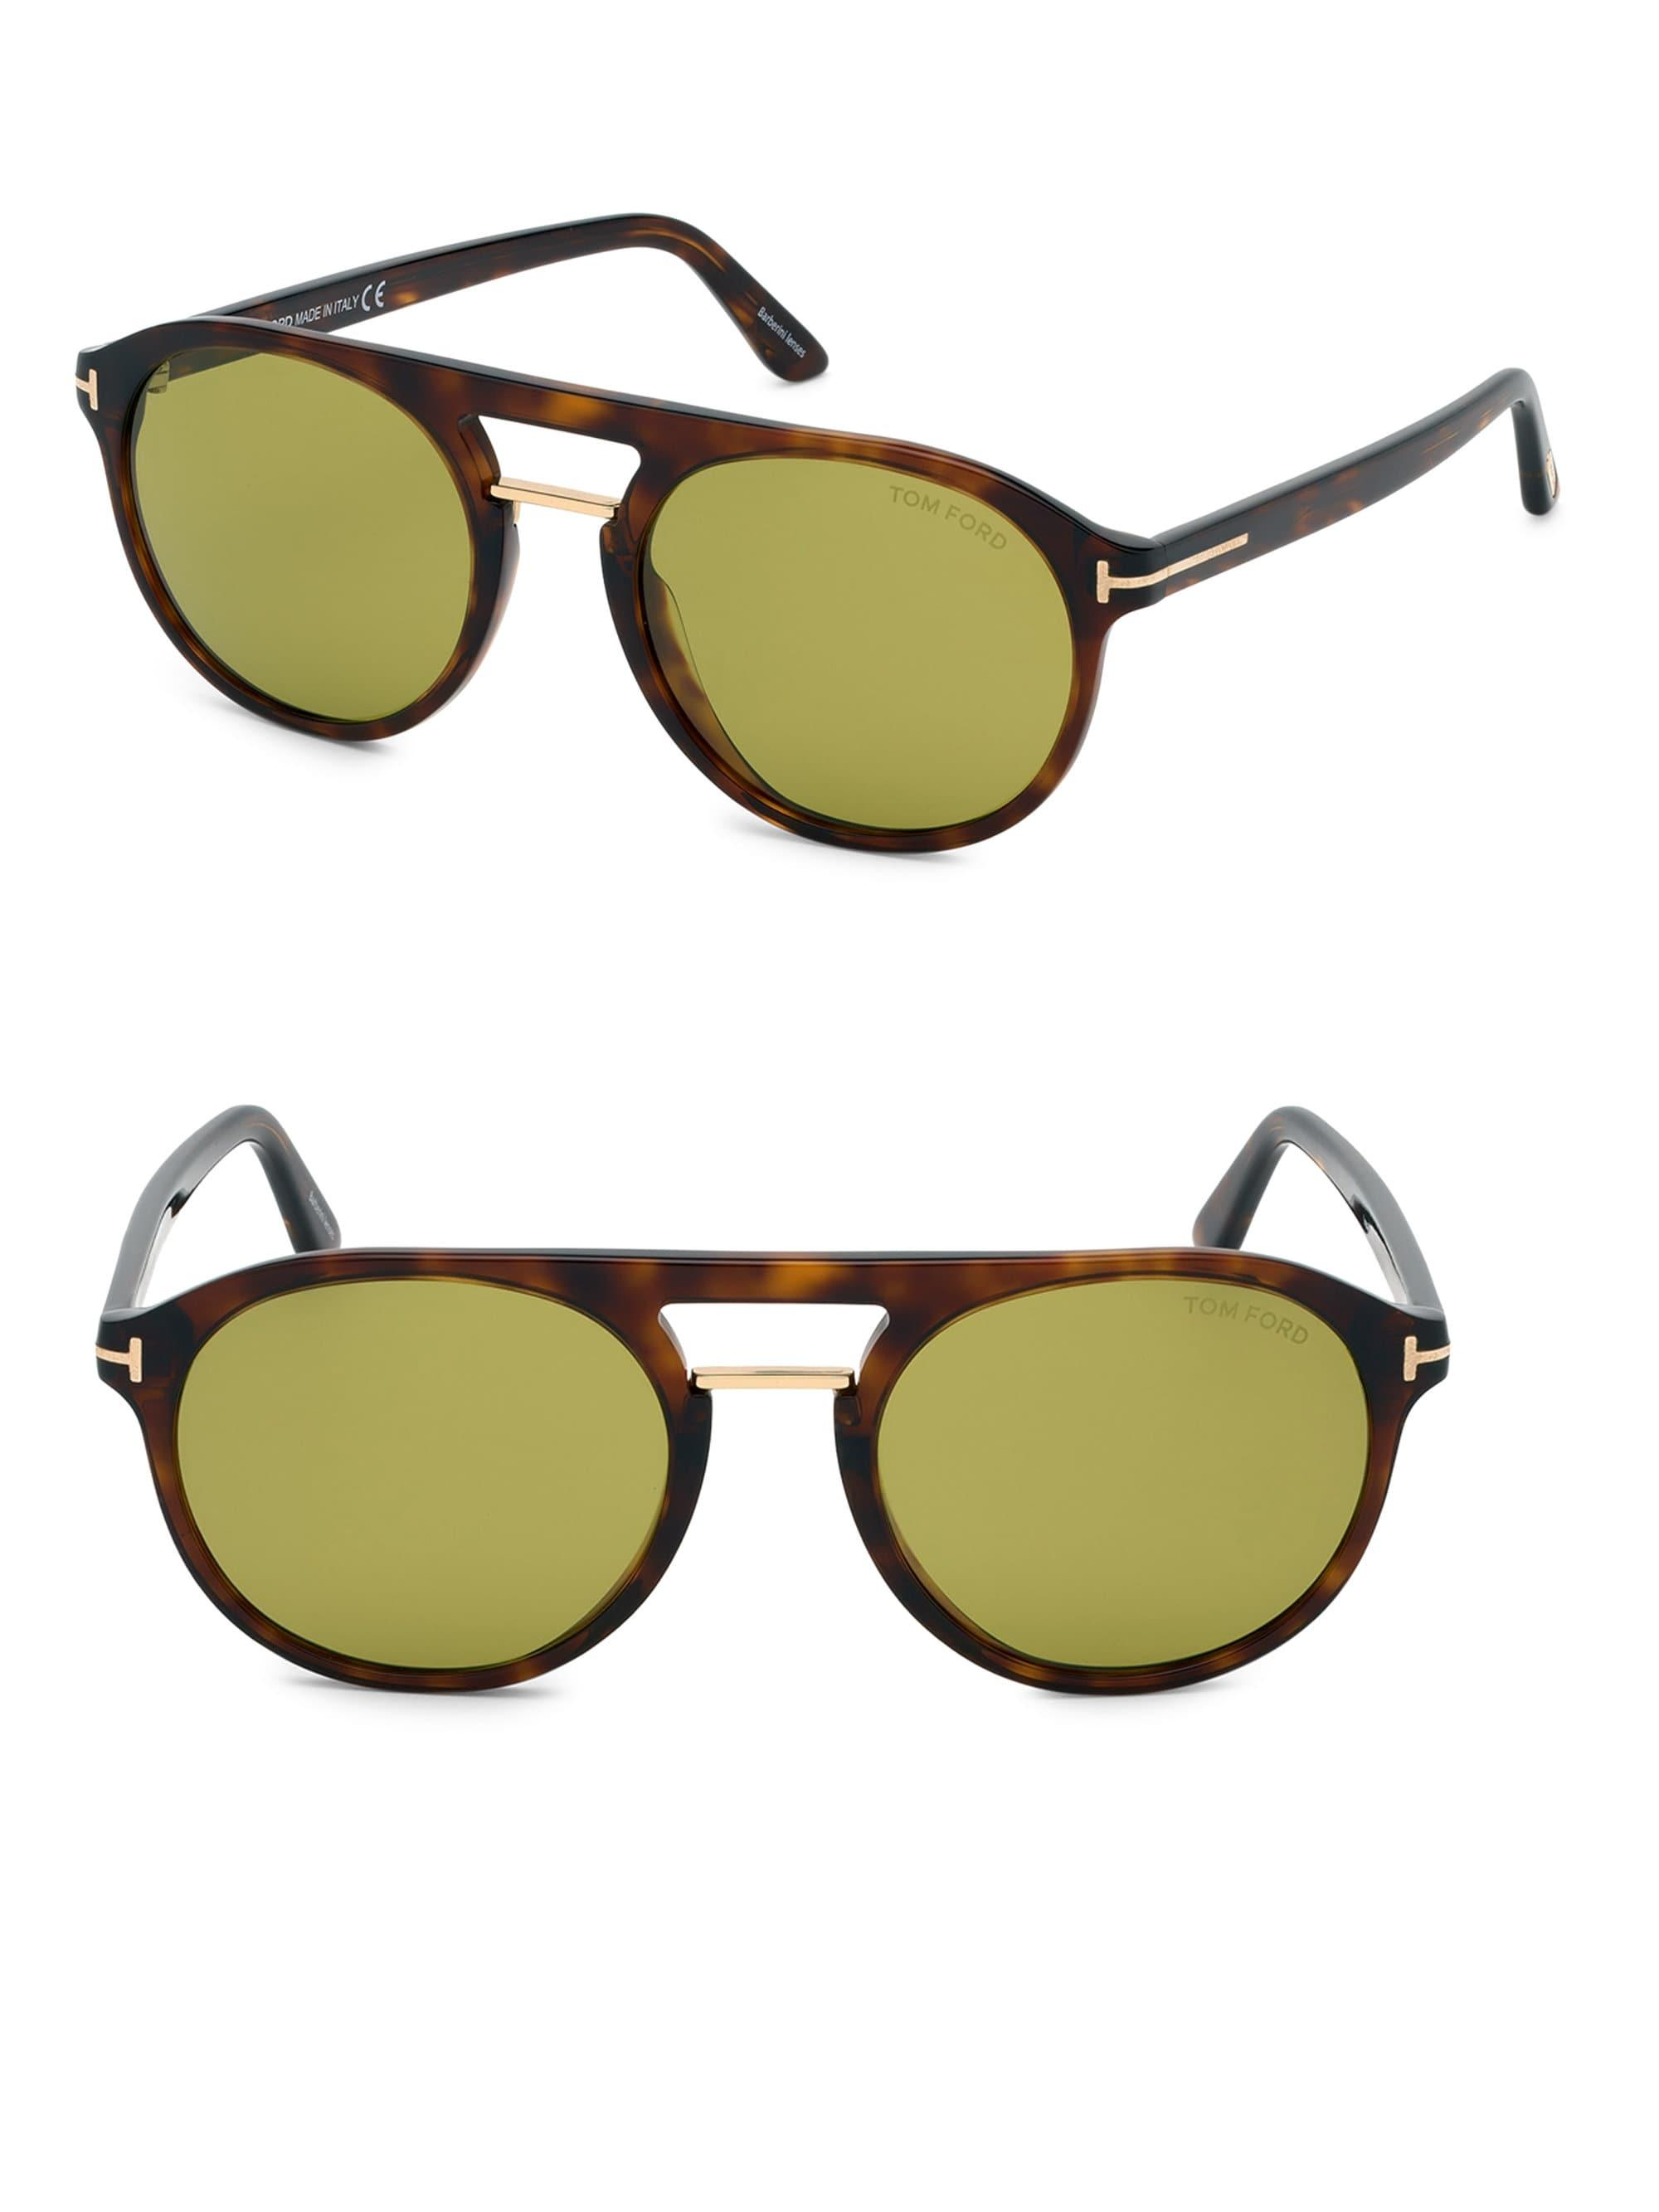 2cadee21c1a Tom Ford - Green Ivan 54mm Round Sunglasses for Men - Lyst. View fullscreen